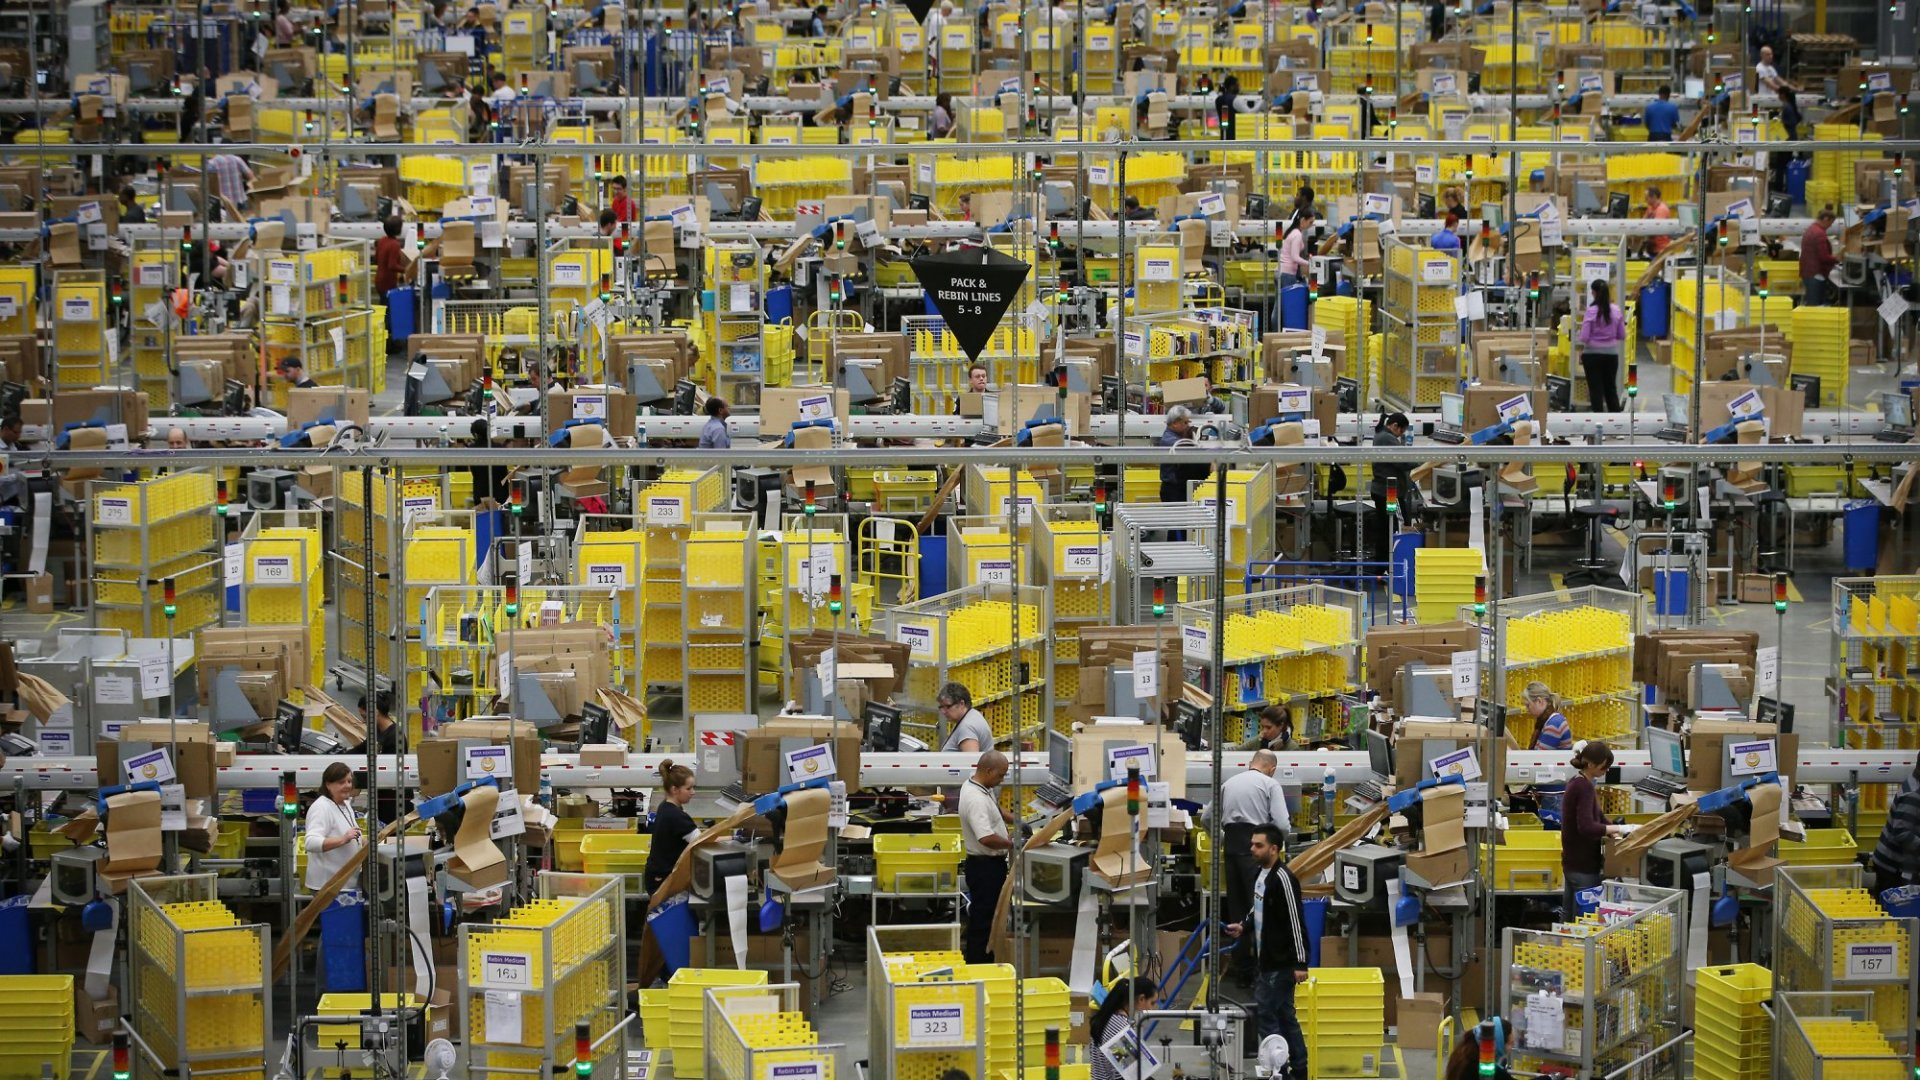 7 Lawsuits Claim Amazon Fires Pregnant Women--but There's More to This Legal Argument